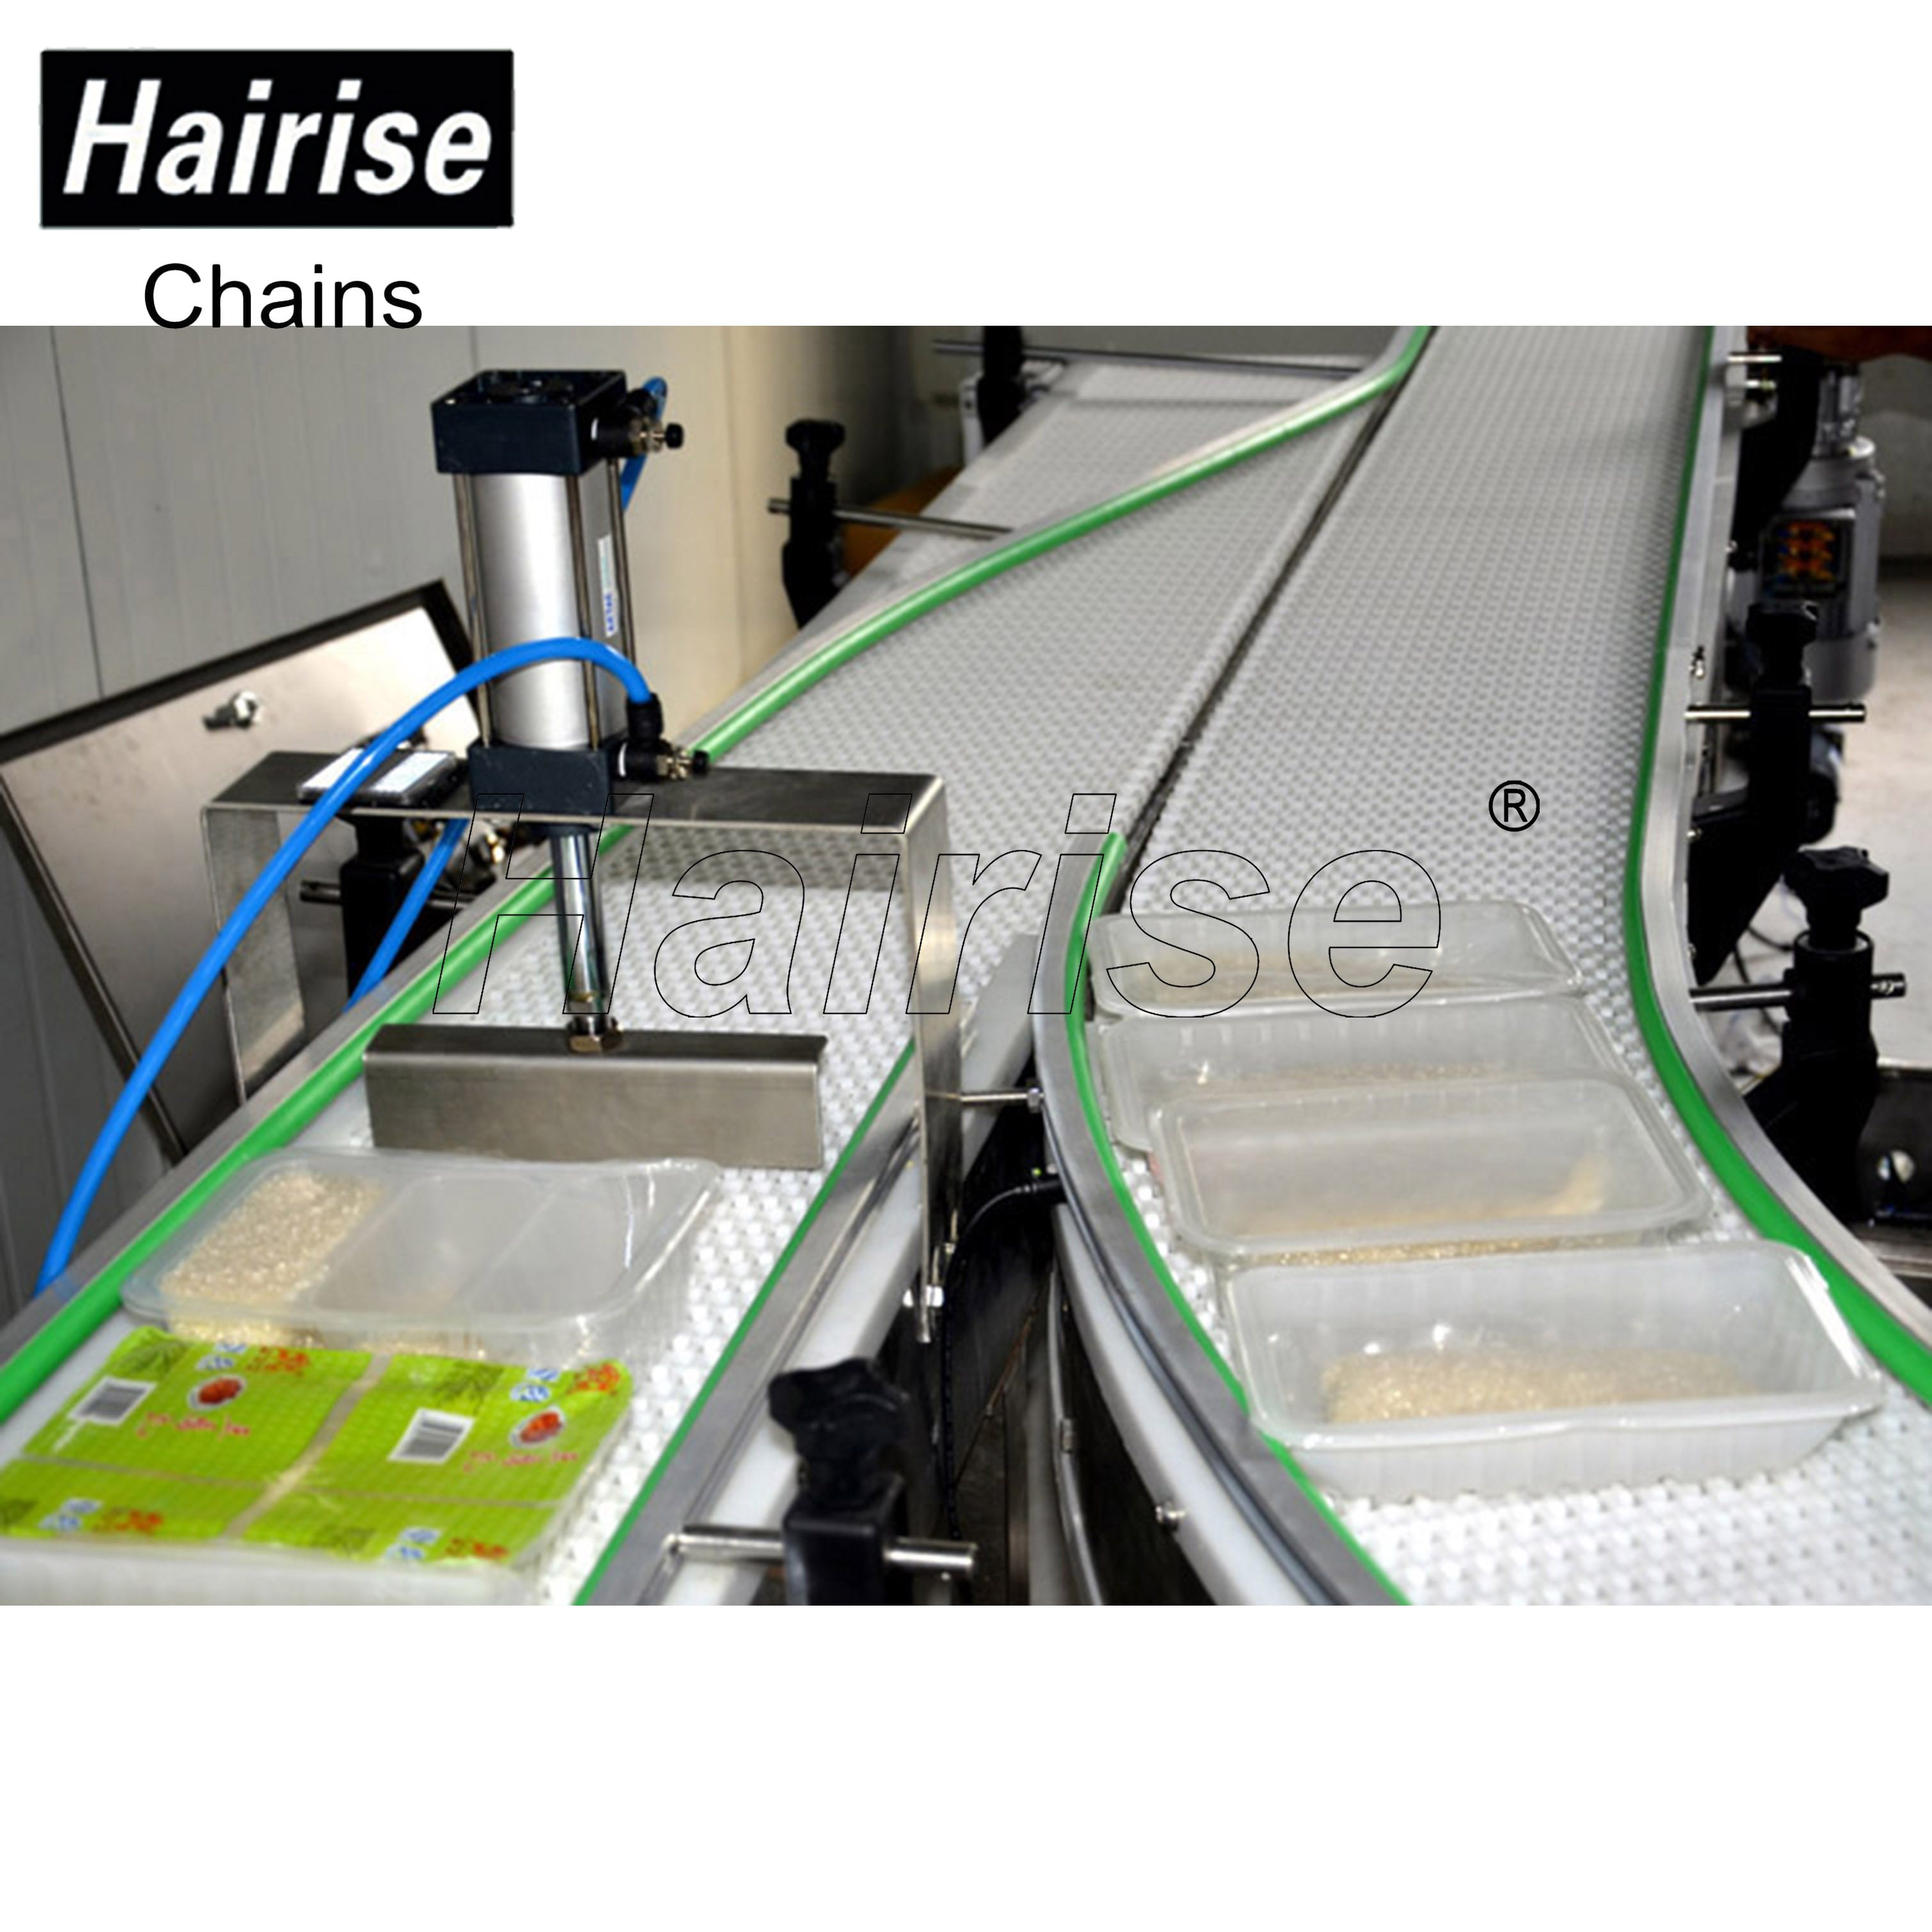 Hairise Food Grade Plastic Belt Conveyor System with Detector Featured Image